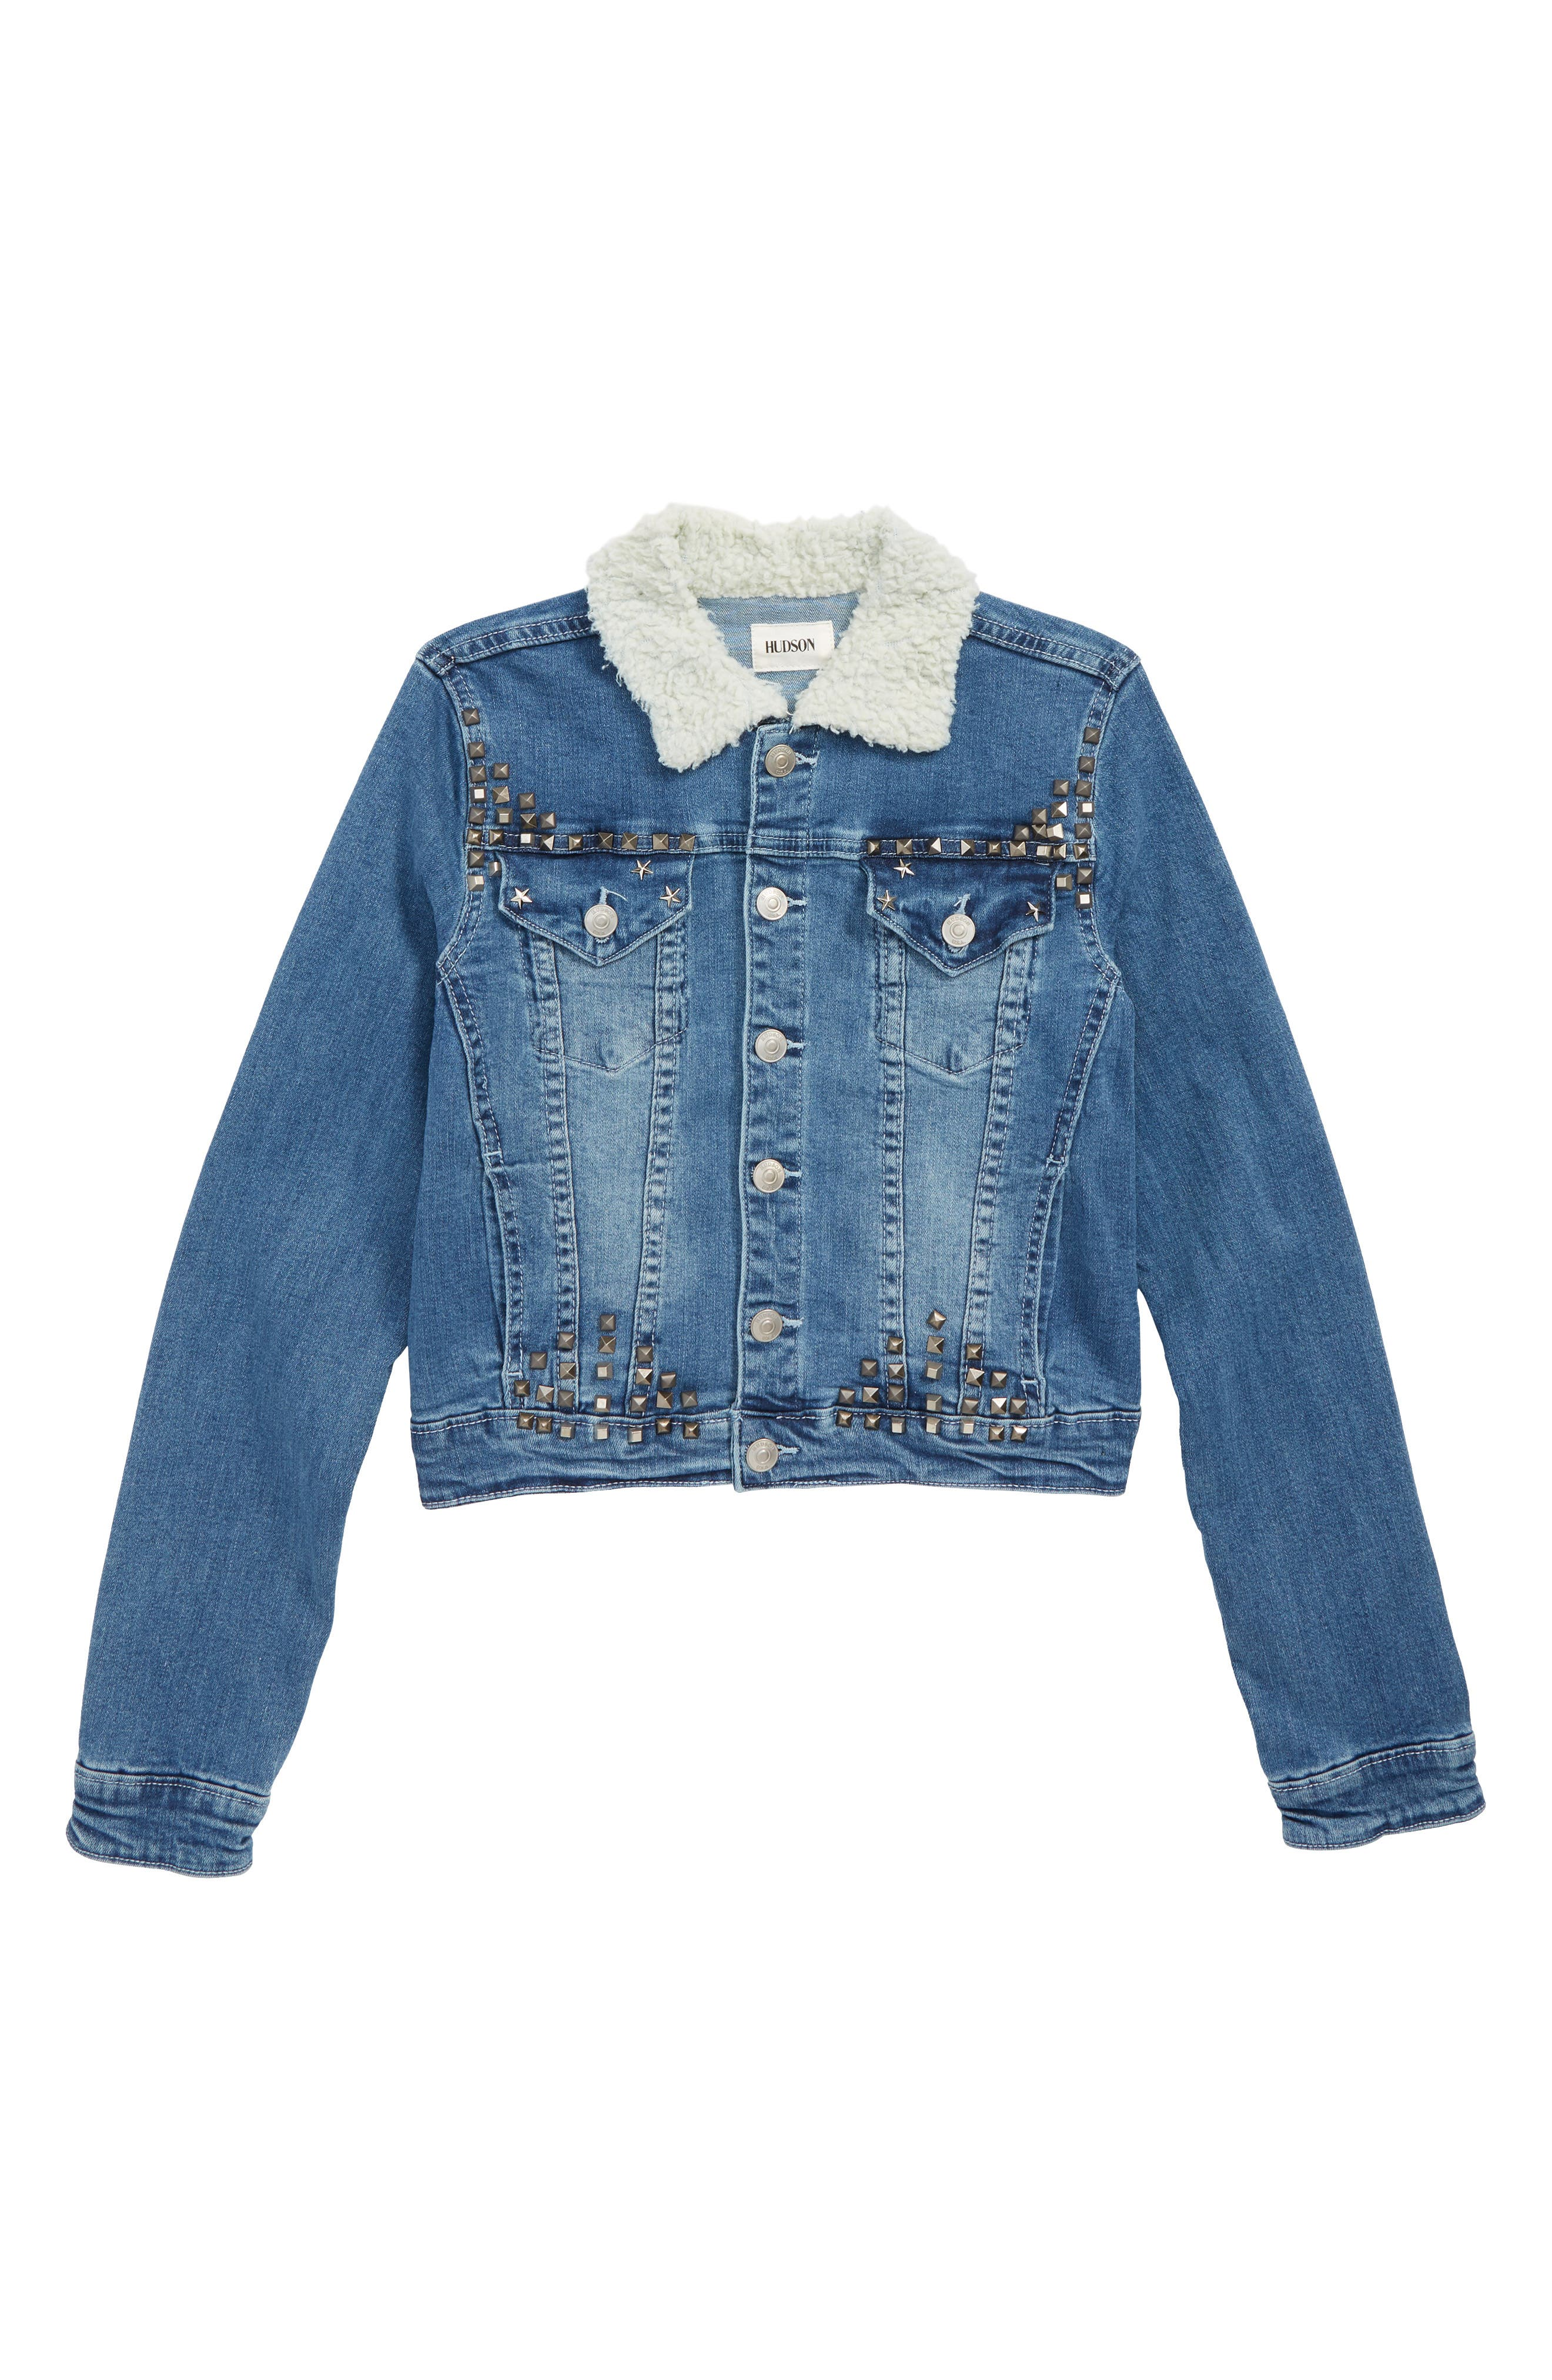 Image of HUDSON Jeans Mariah Crop Denim Jacket with Faux Shearling Collar